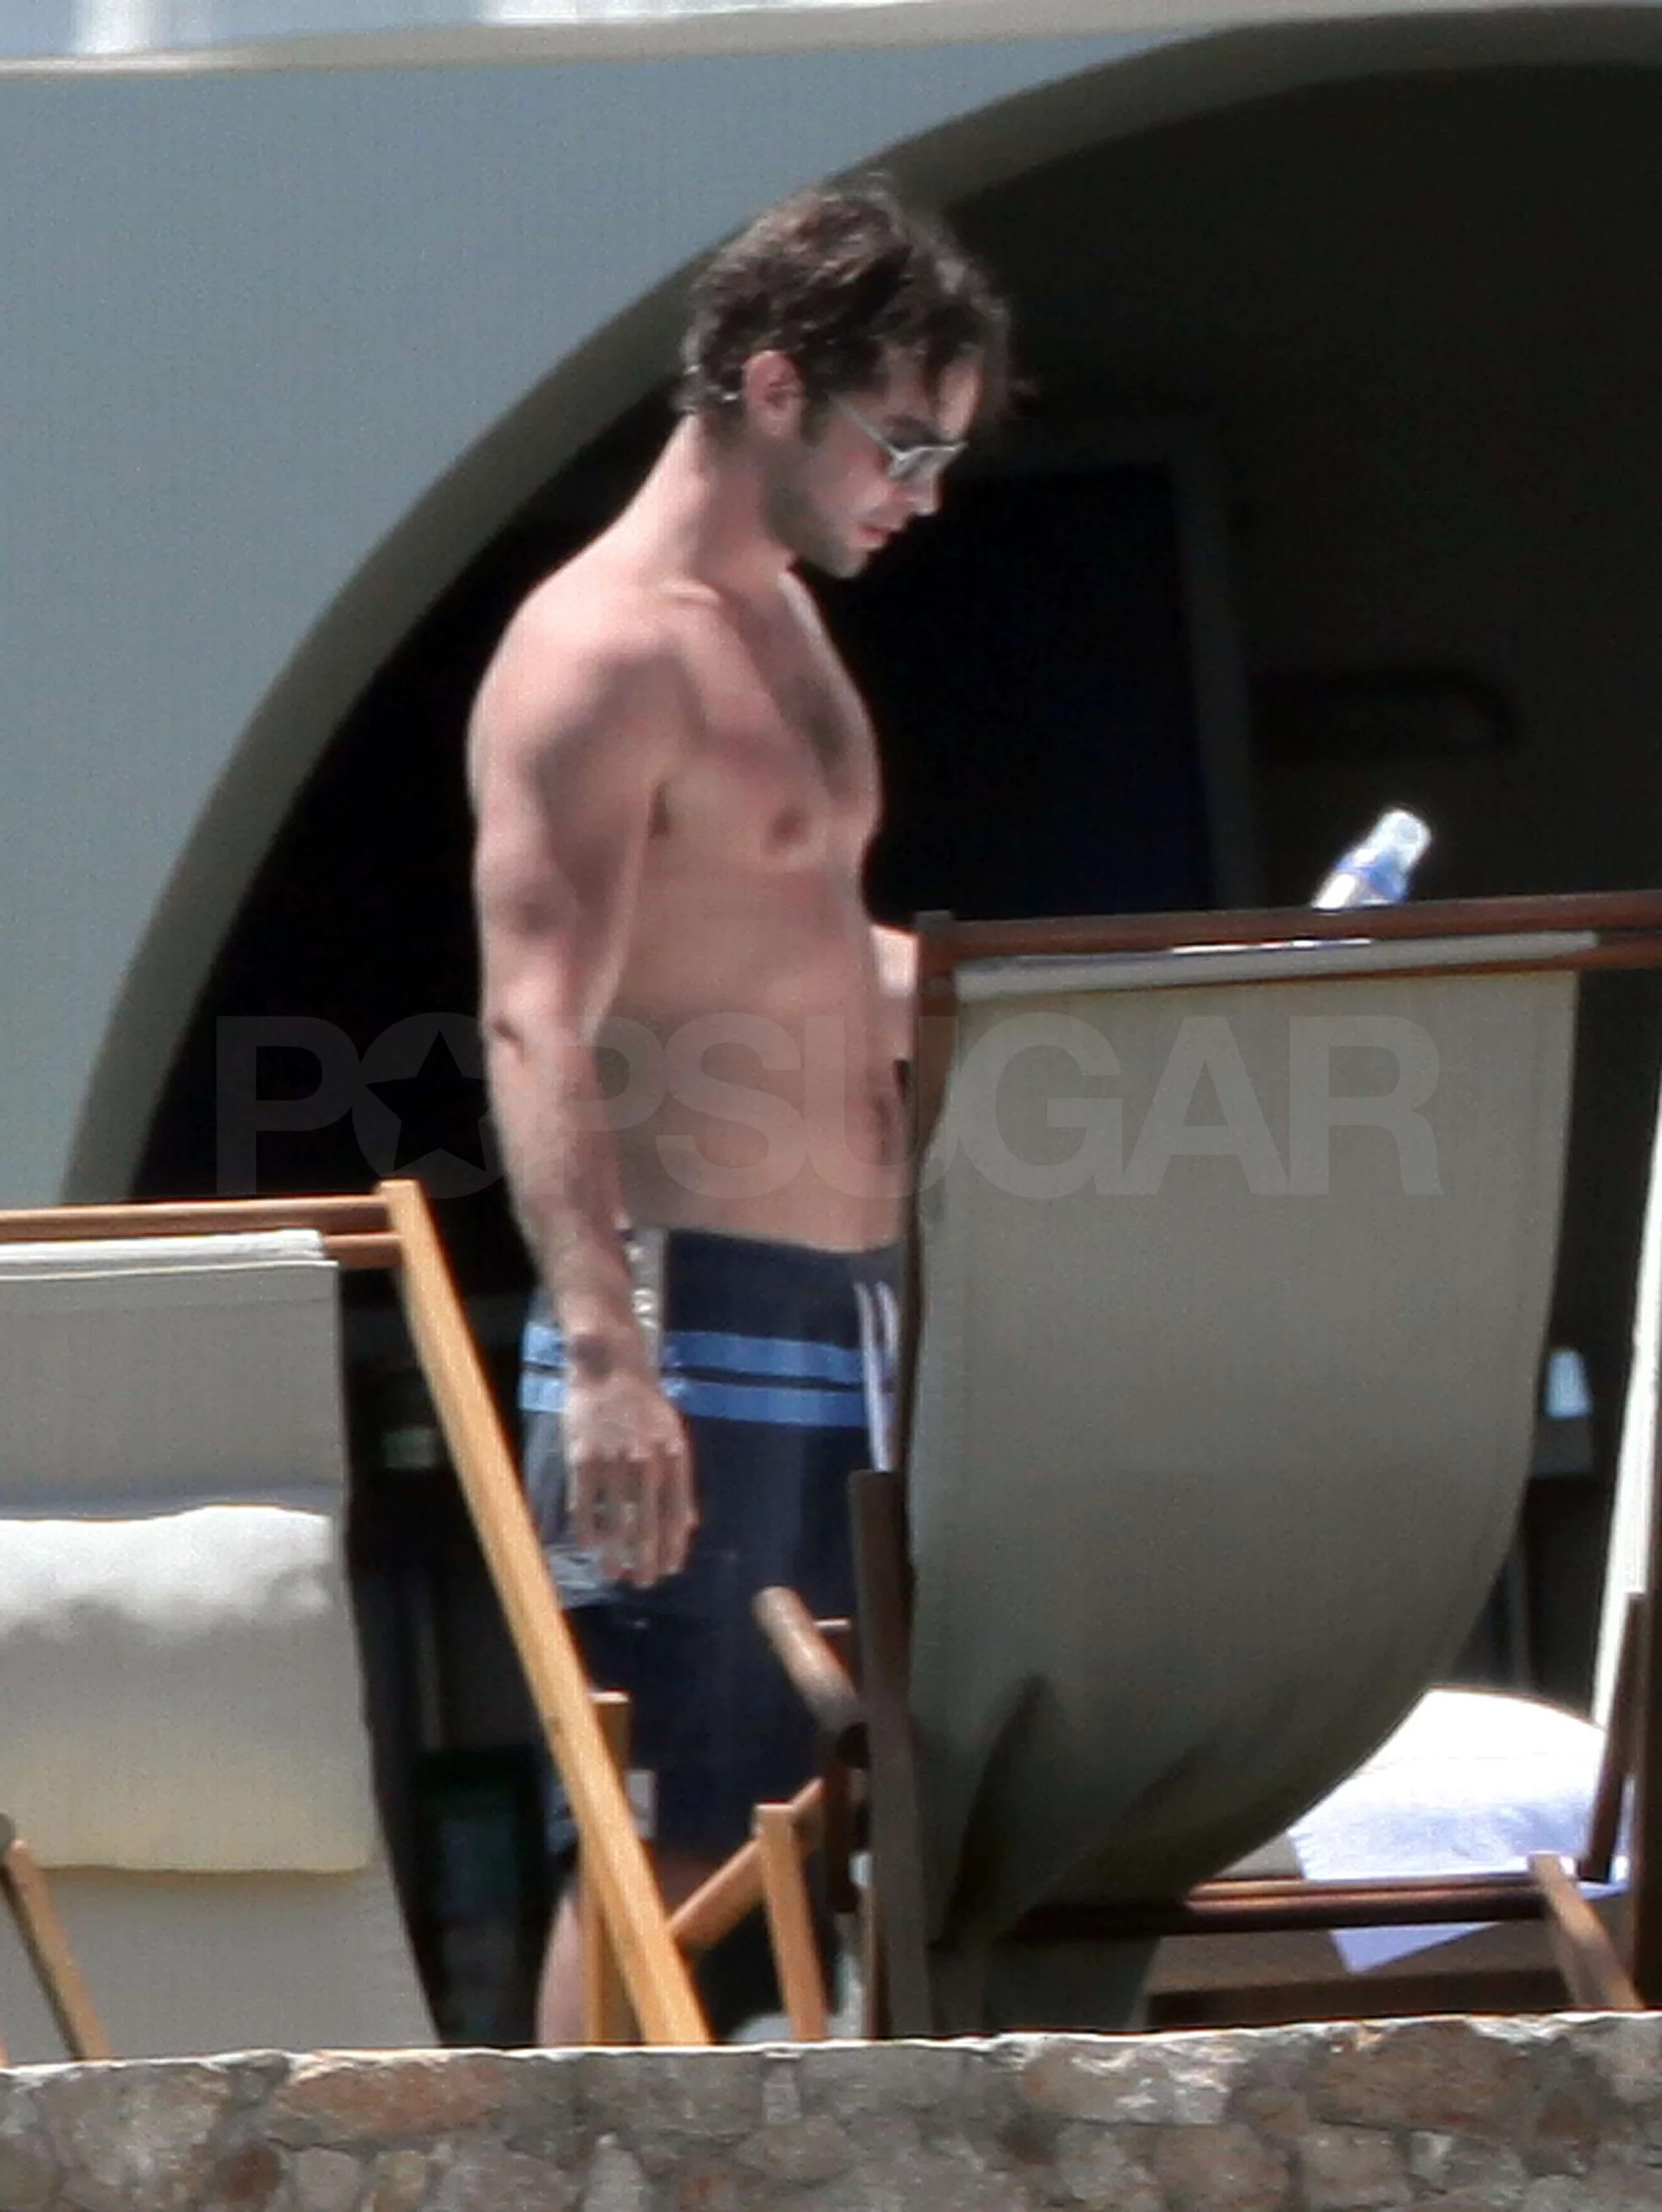 Pictures of Chace Crawford Shirtless in Mexico with Tony